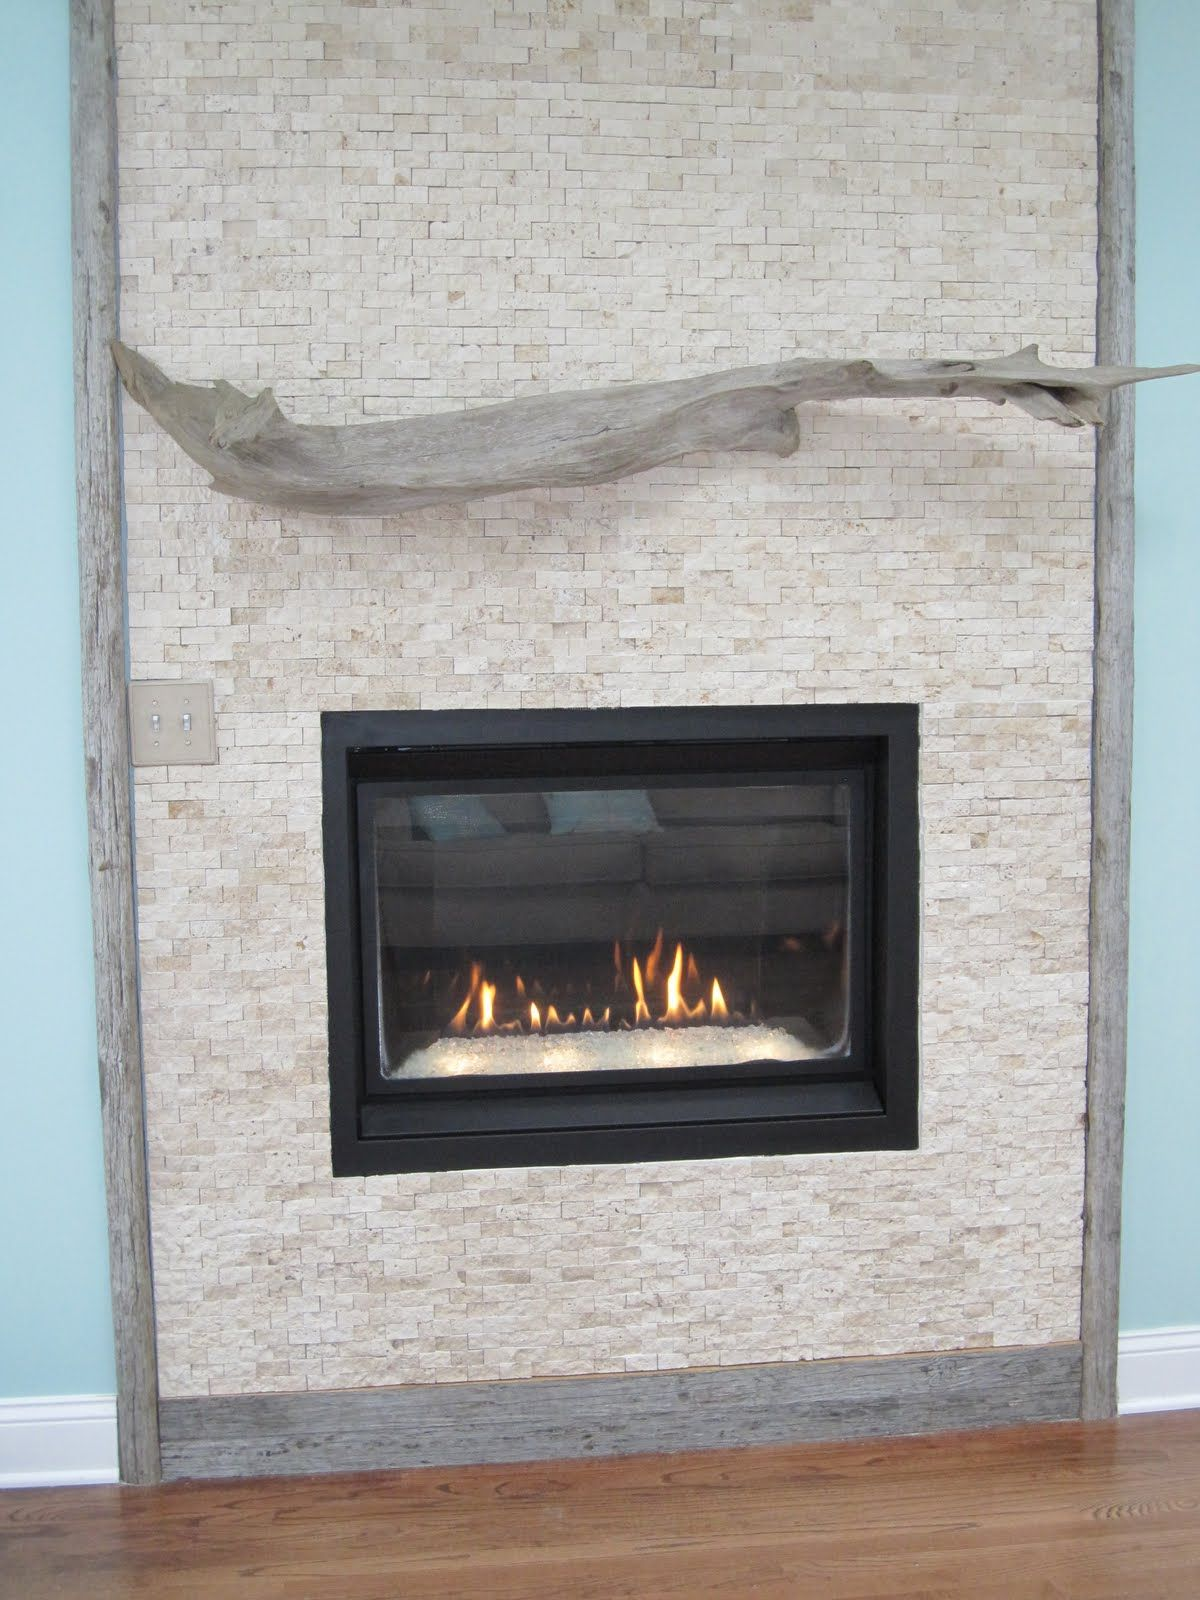 How to add a fireplace - Add A Mantle To Gas Fireplace When We Renovated Our Beach Home We Decided To